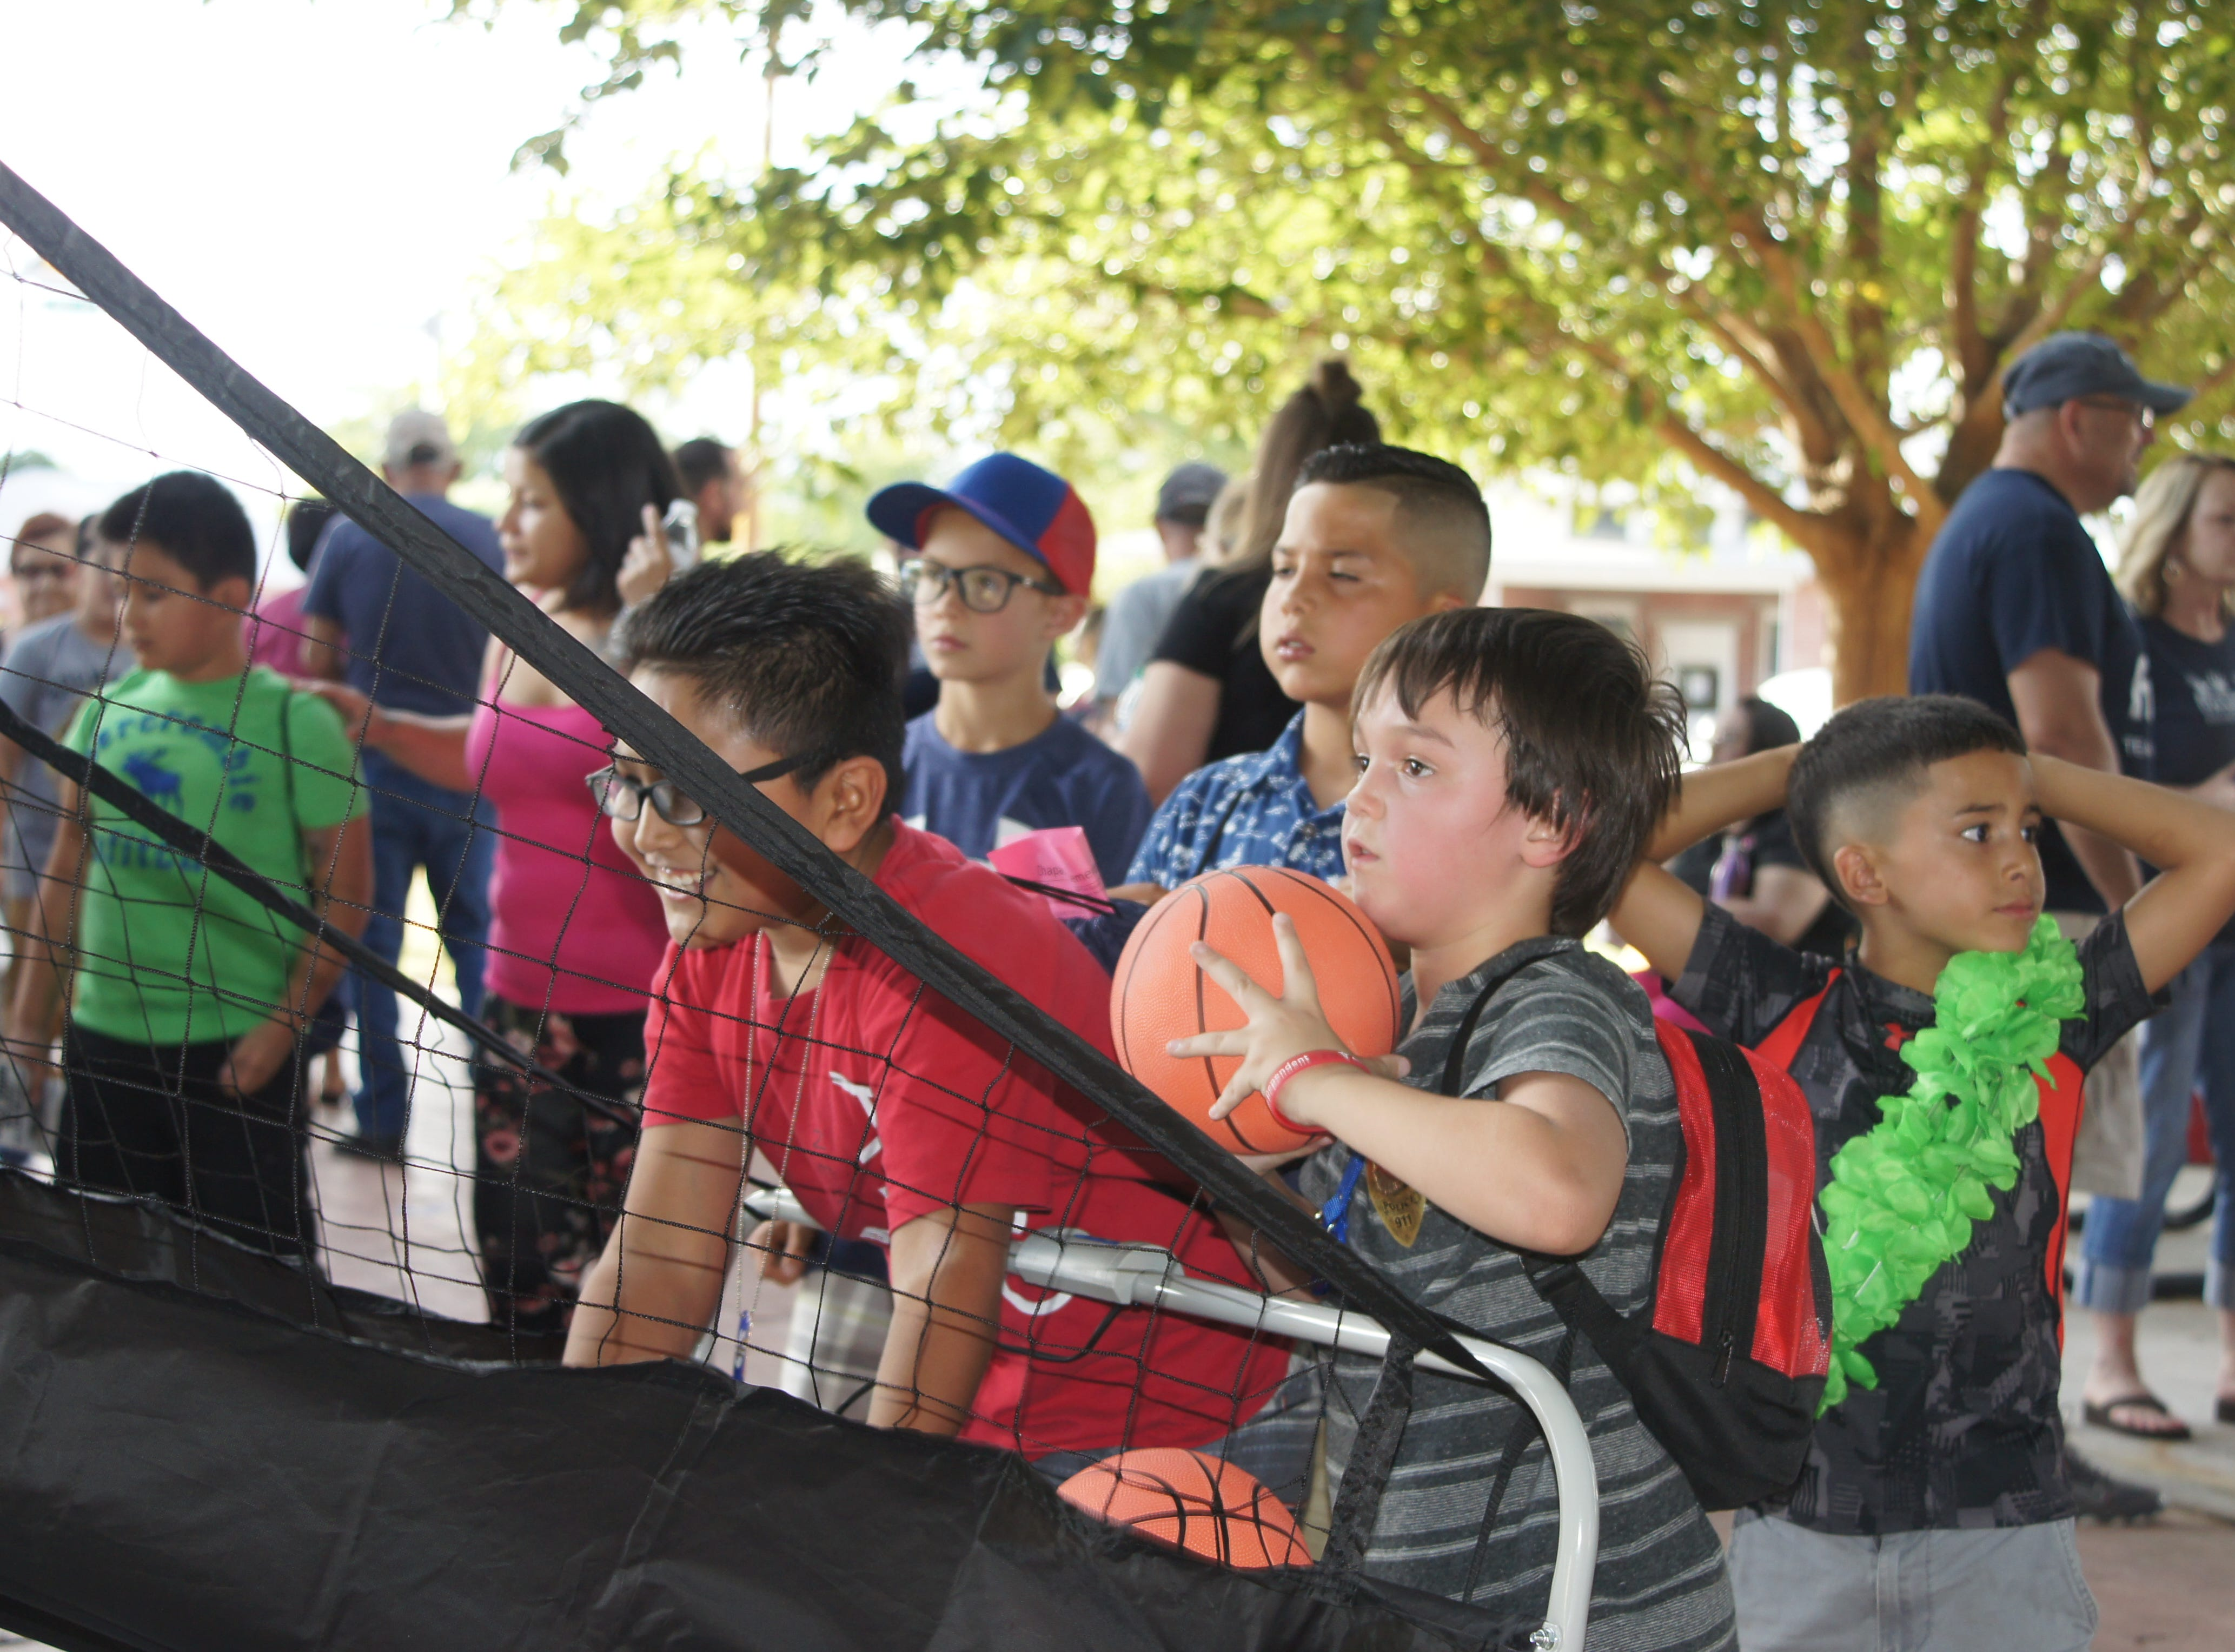 Children of all ages were treated to free games and special prizes during the second annual National Night Out held Tuesday, Aug. 7, 2018 at Luna County Courthouse Park in Deming, NM.